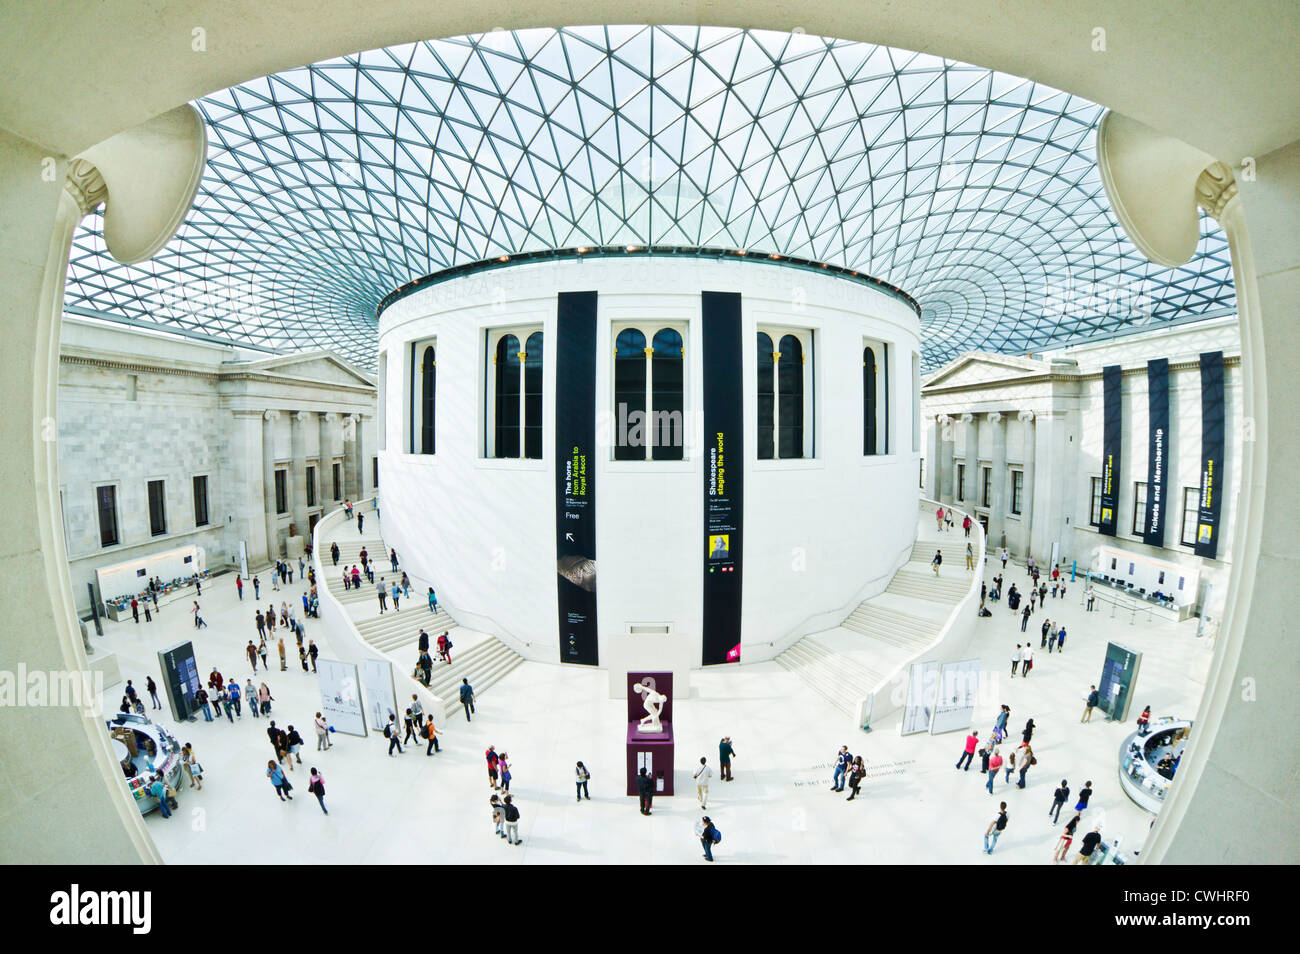 "British Museum London Queen Elizabeth II ""Great Court"" Glasdach entworfen vom Architekten Norman Foster Stockbild"